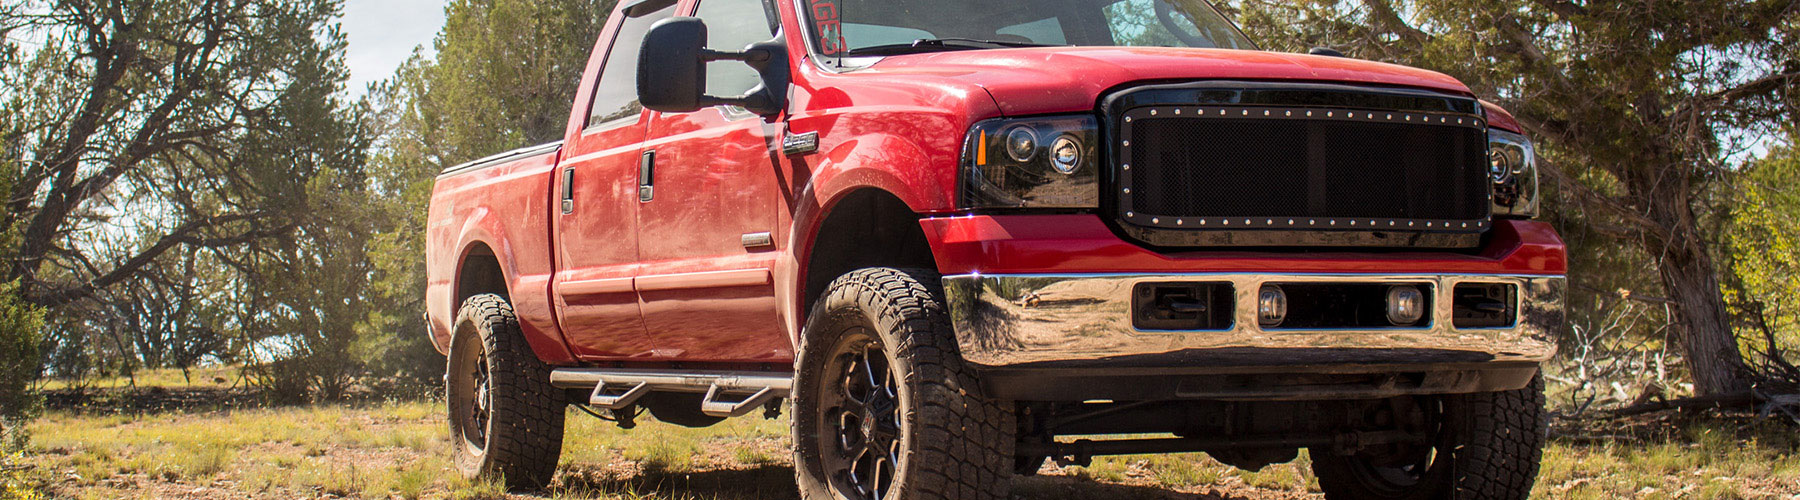 Stage 3\'s 2006 F250 6.0L Big Red Project Truck